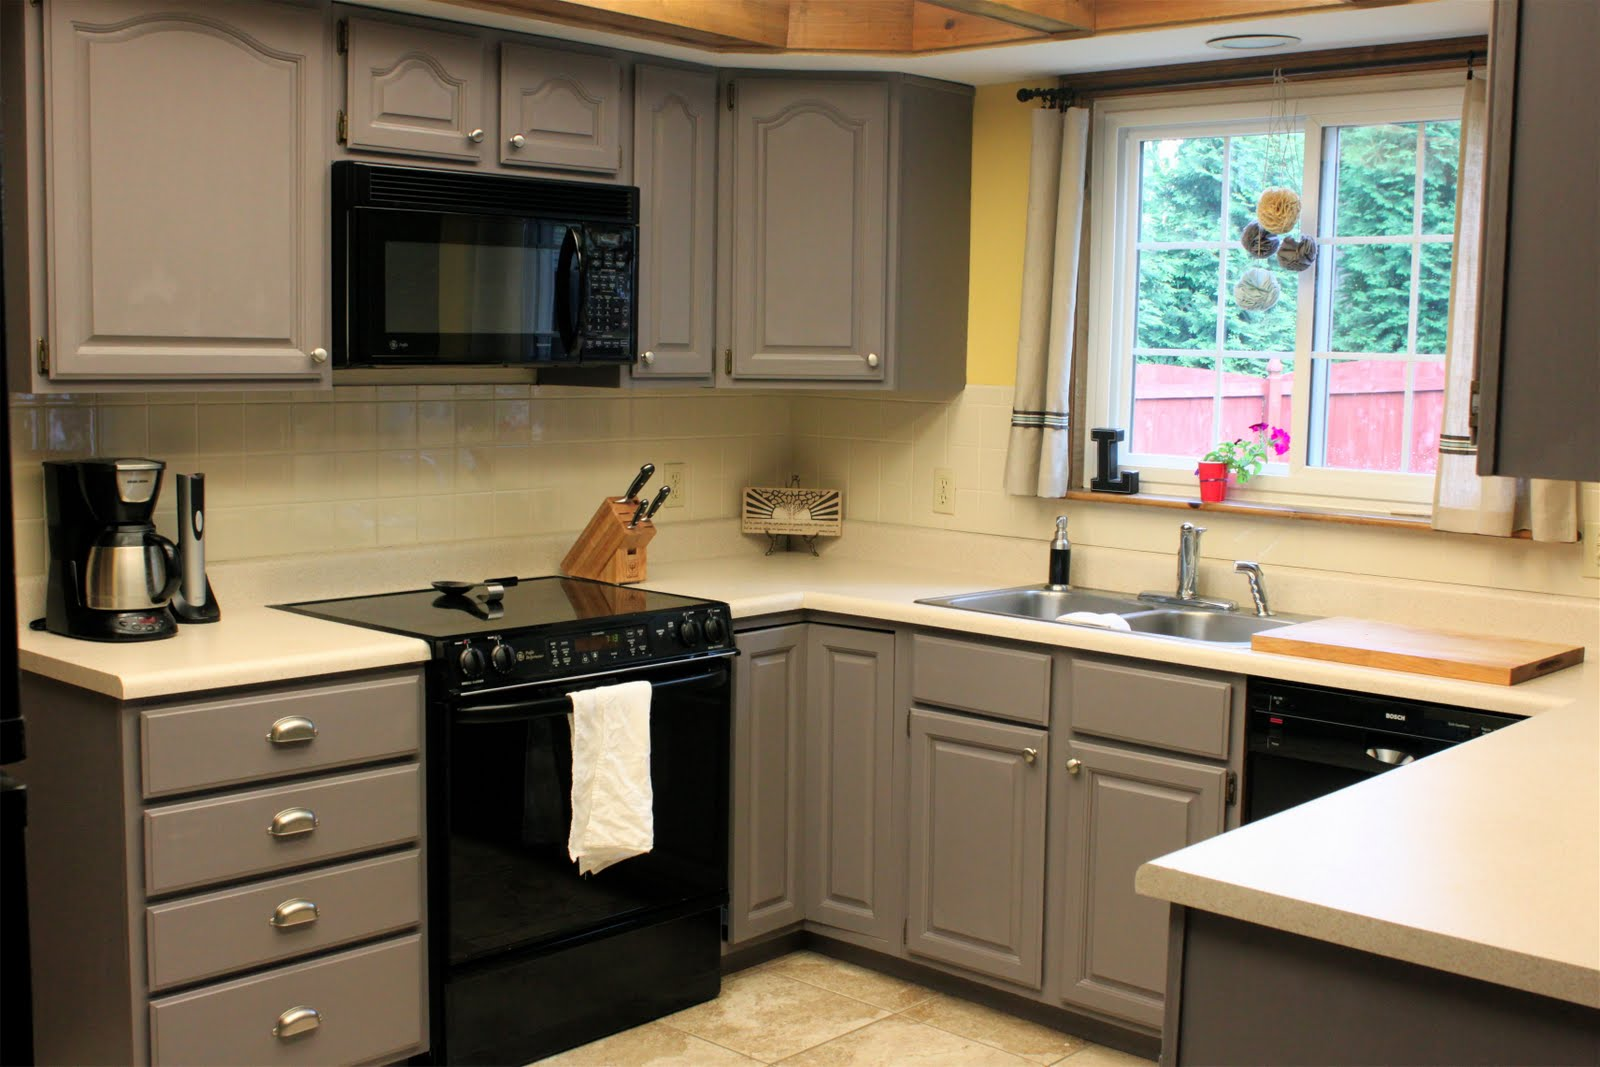 645 workshop by the crafty cpa work in progress painting kitchen cabinets - Kitchen paint colors ...